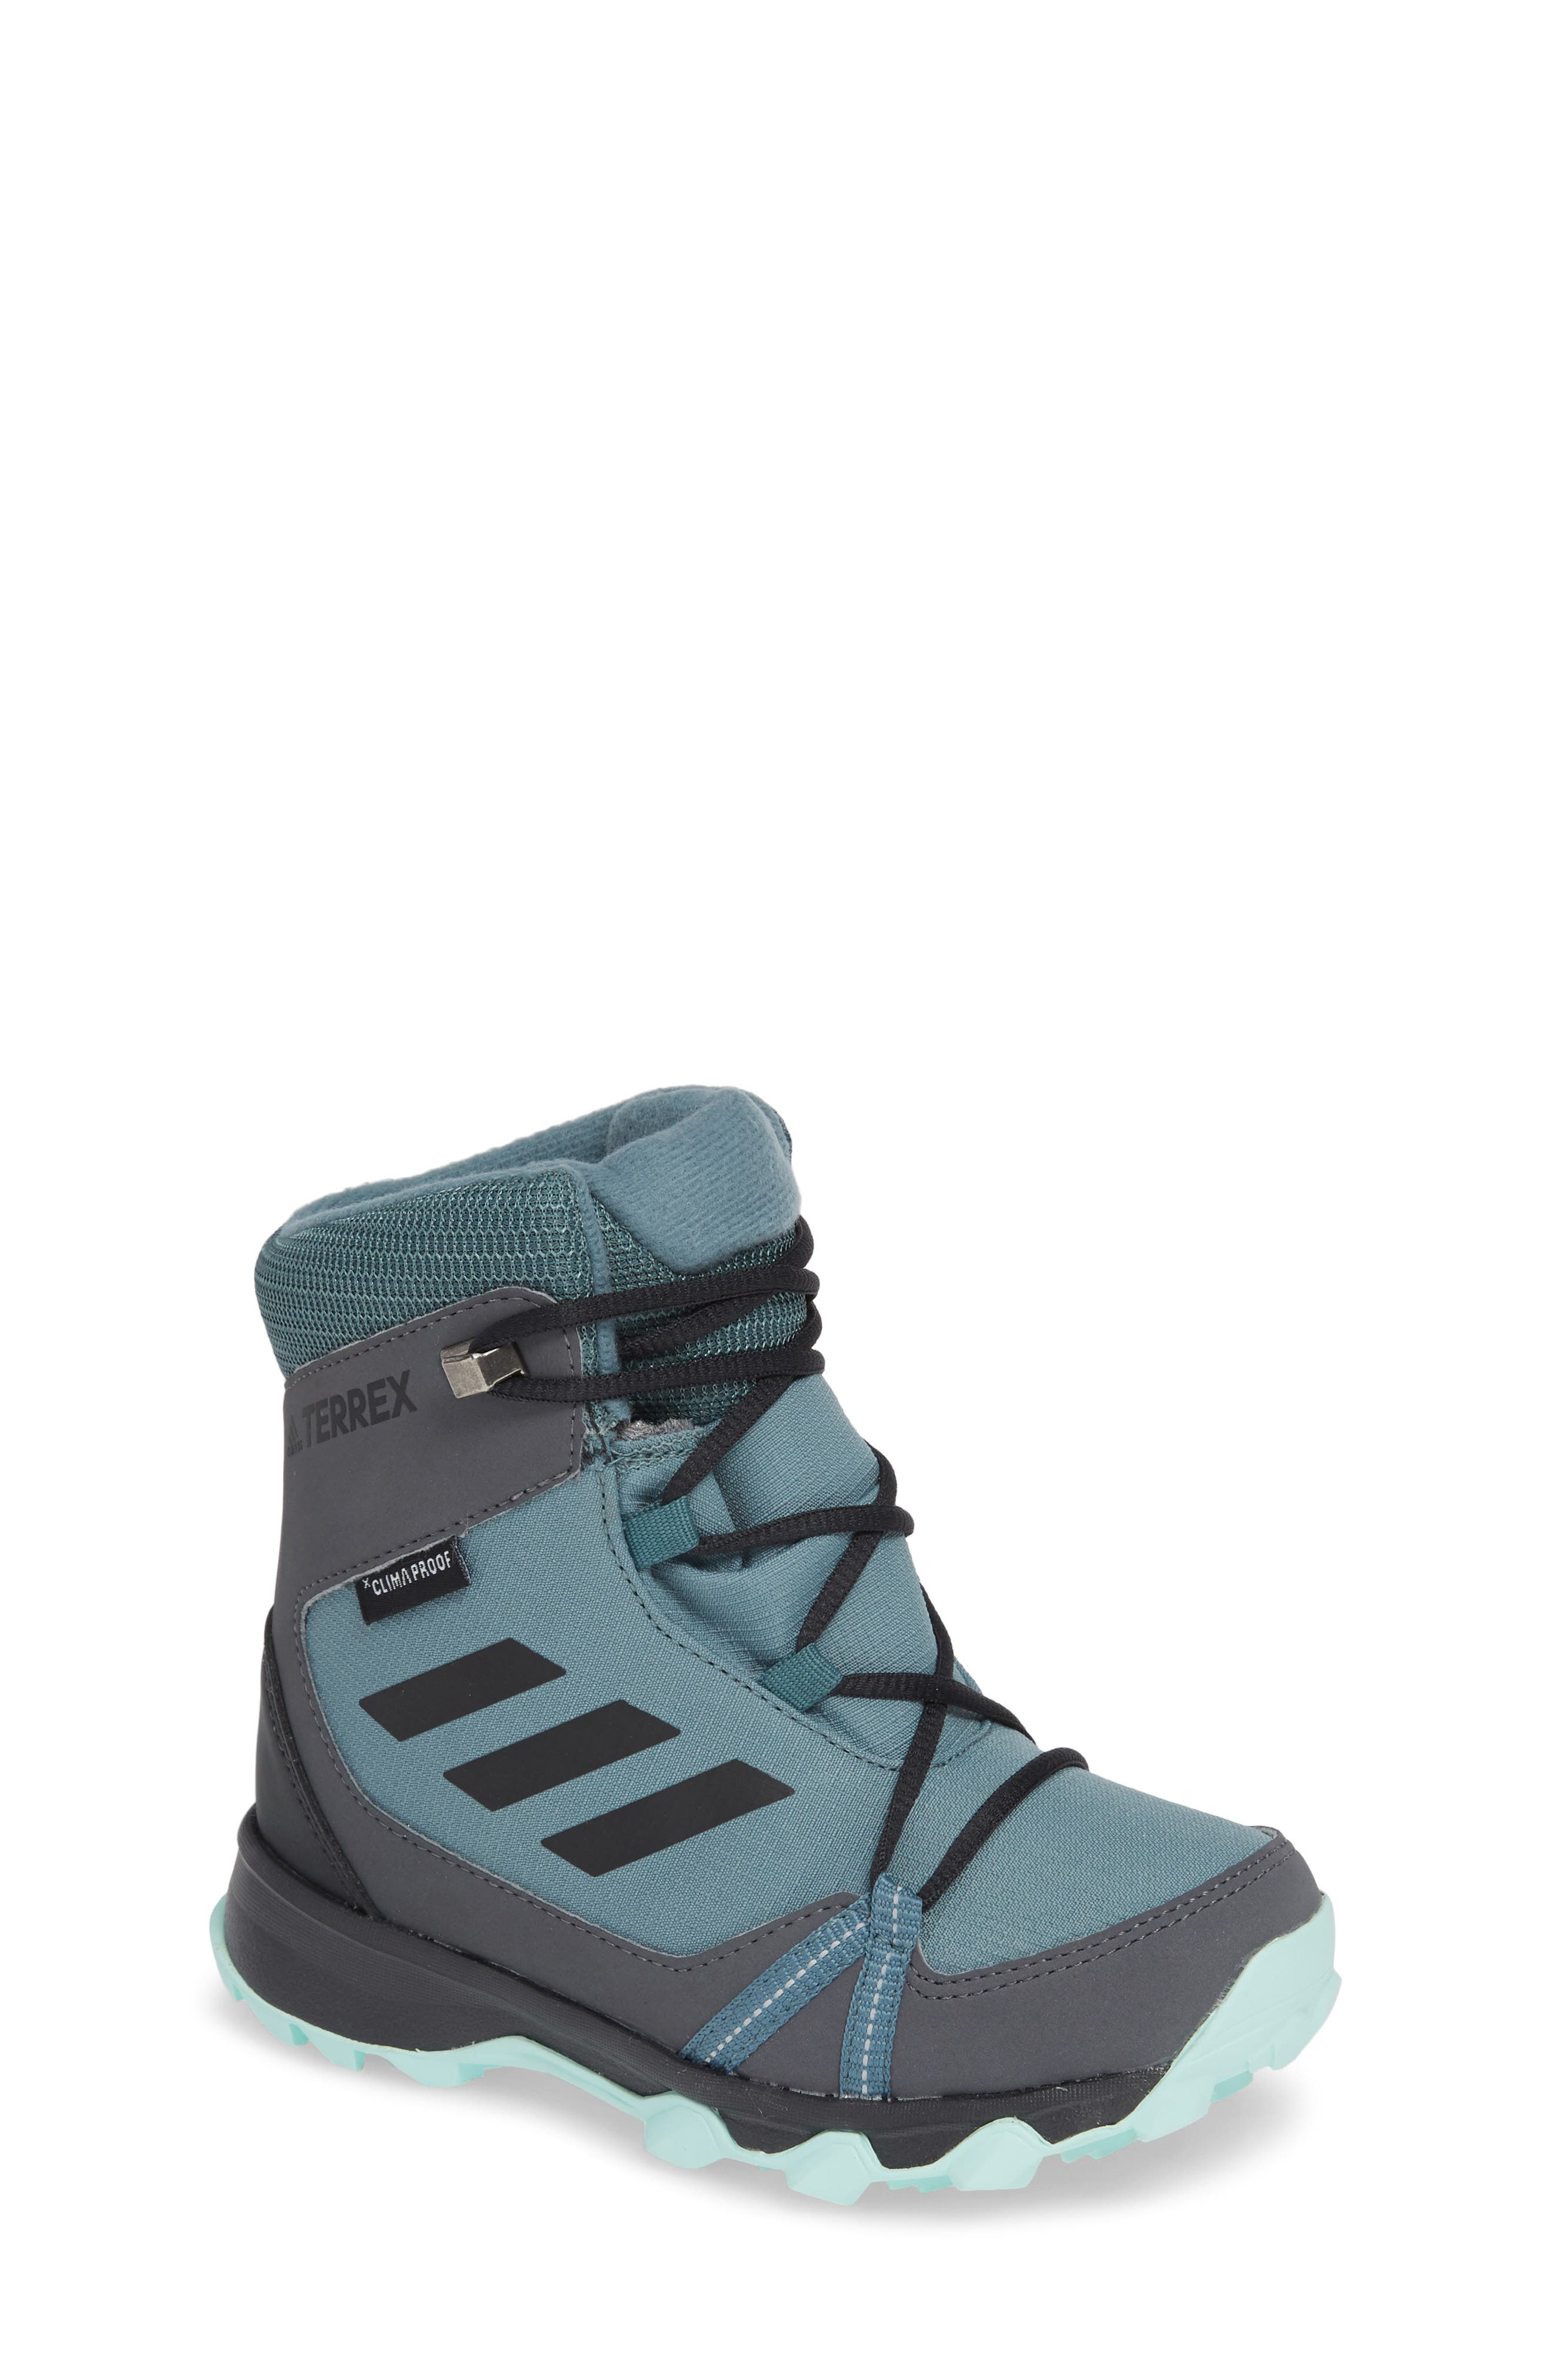 Terrex Snow CP CW Insulated Waterproof Sneaker Boot,                             Main thumbnail 1, color,                             CLEAR MINT/ CARBON/ AQUA